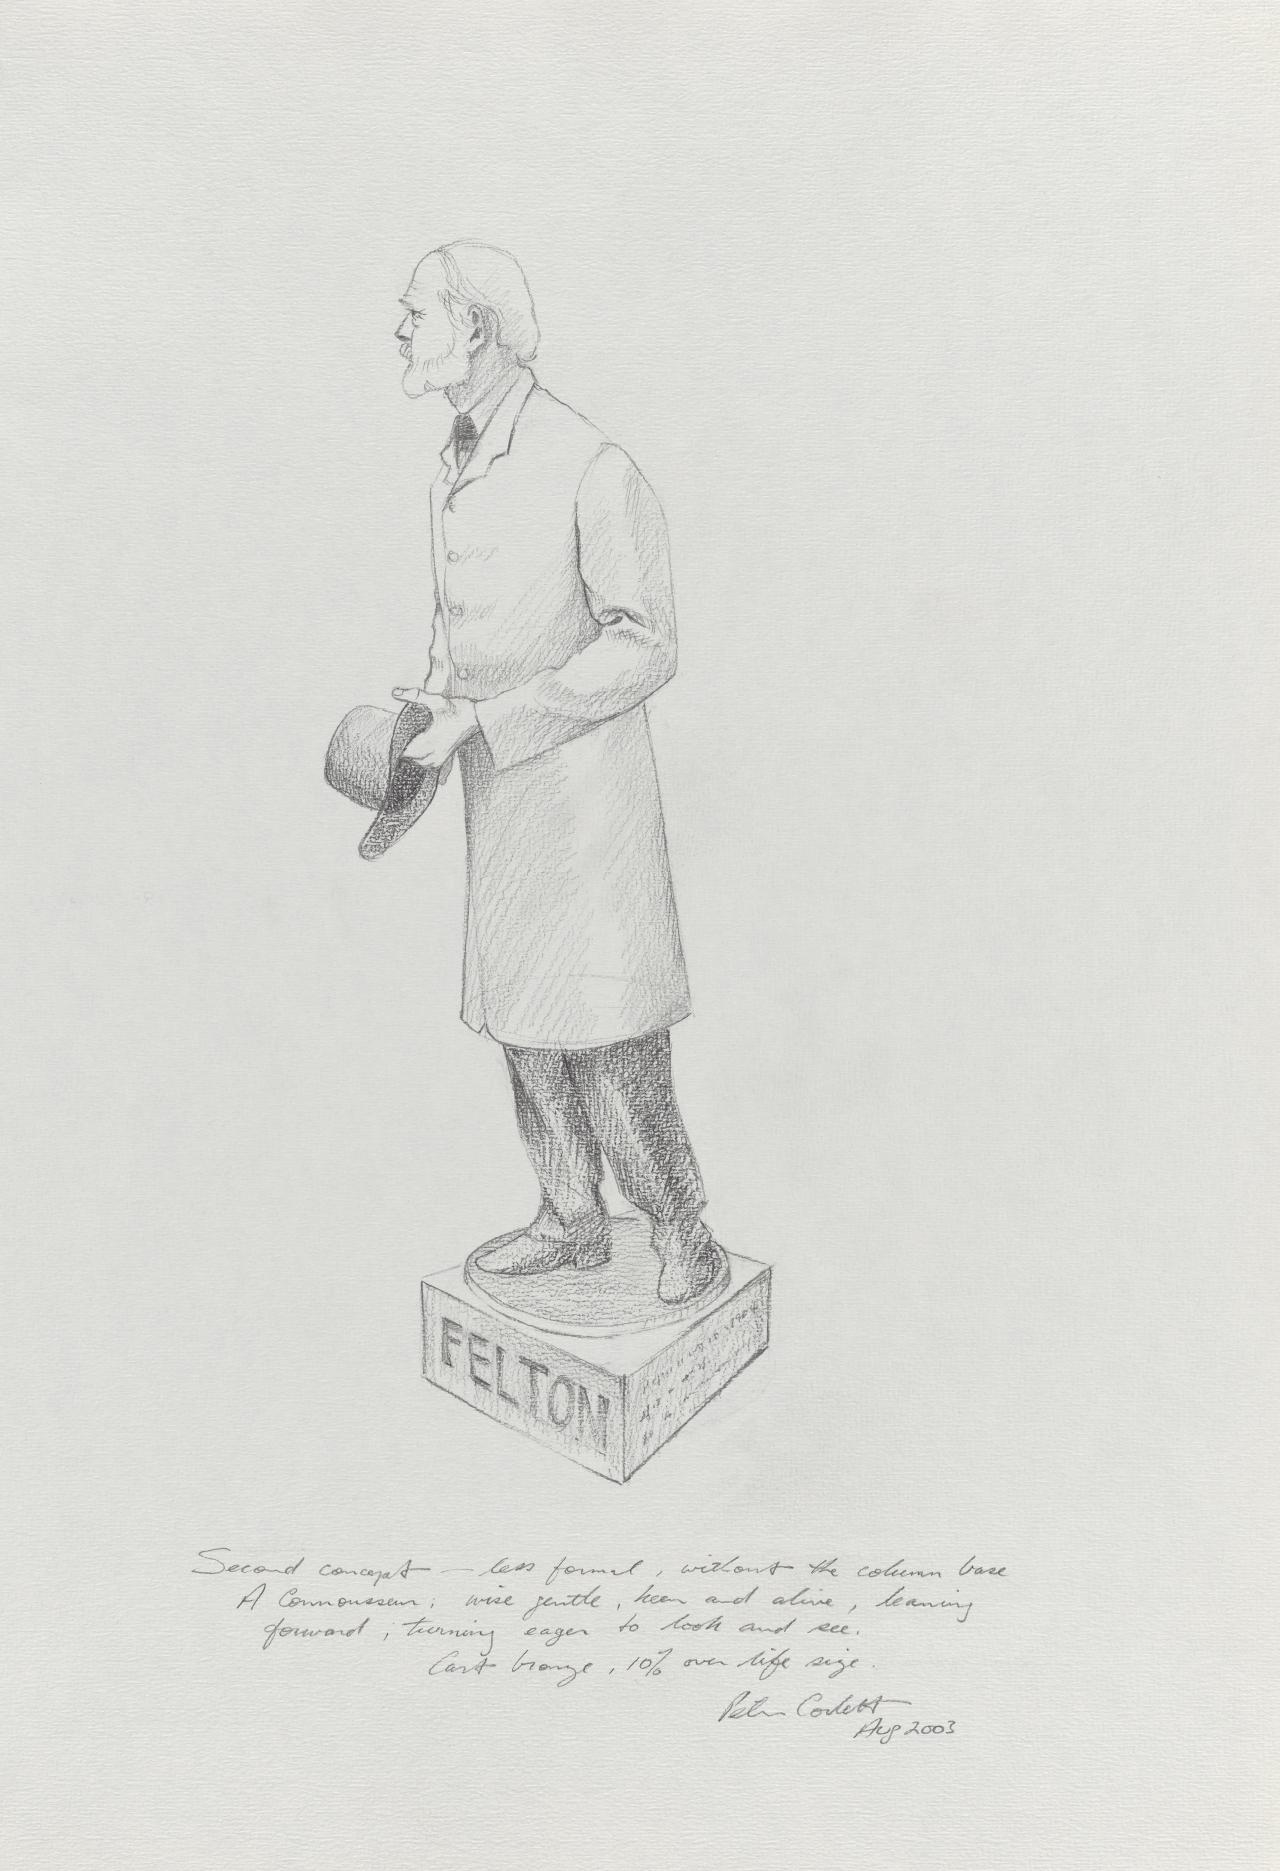 (Preliminary drawing for a Centenary Sculpture of Alfred Felton)